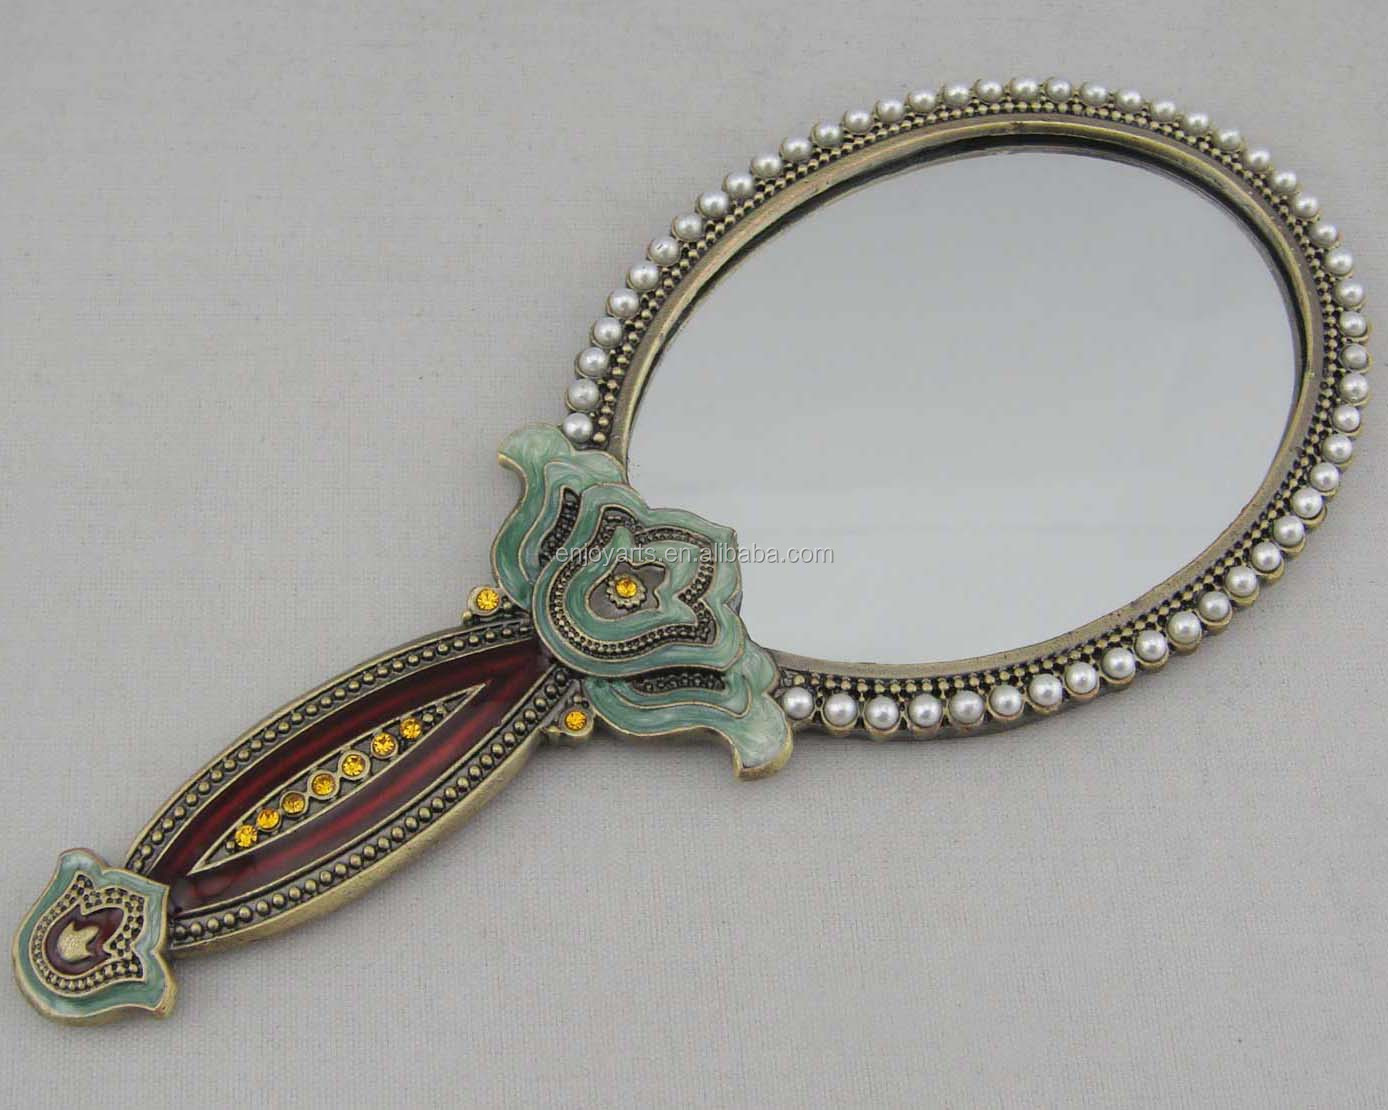 Antique hand mirror Free Clipart Hand Antique Bronze Plating Pearls Oval Metal Hand Mirror p04006a2 Picclick Antique Bronze Plating Pearls Oval Metal Hand Mirror p04006a2